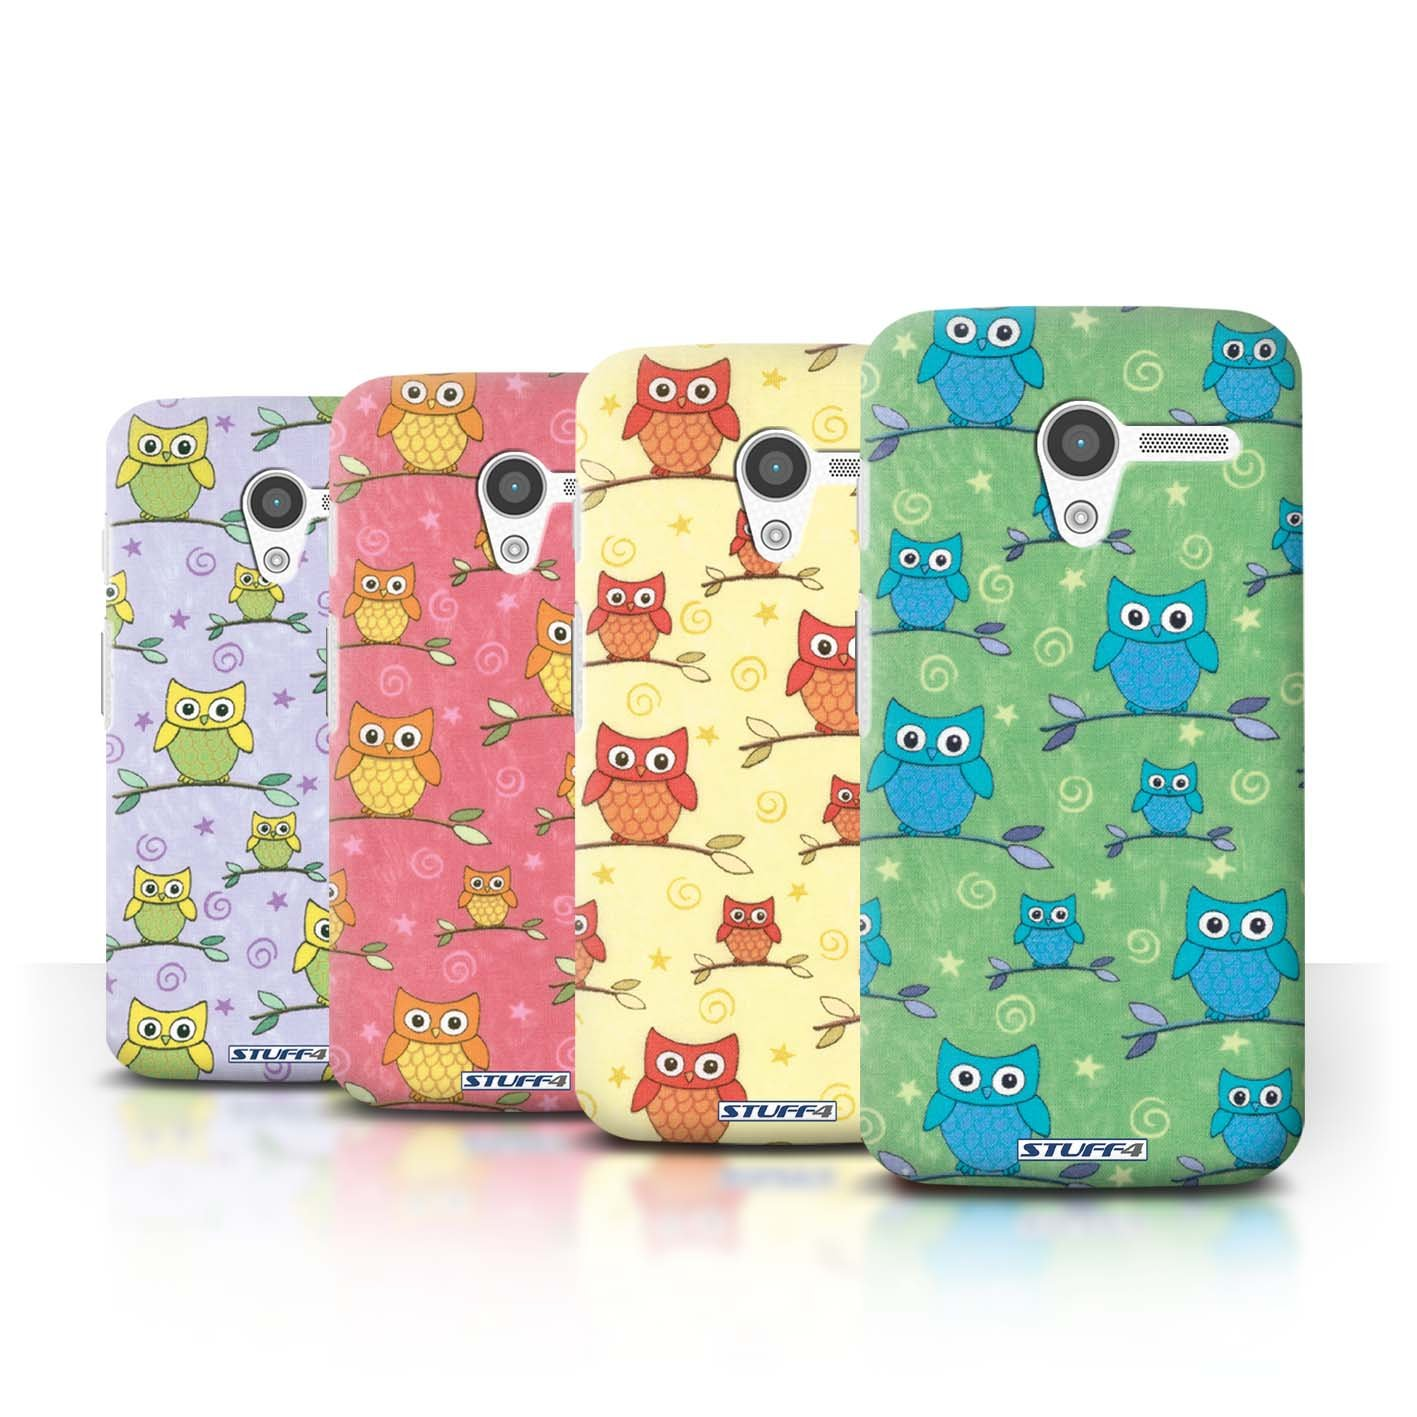 STUFF4 Phone Case / Cover for Motorola MOTO X / Pack (11 pcs) / Cute Owl Pattern Collection / by Deb Strain / Penny Lane Publishing, Inc.review and more news